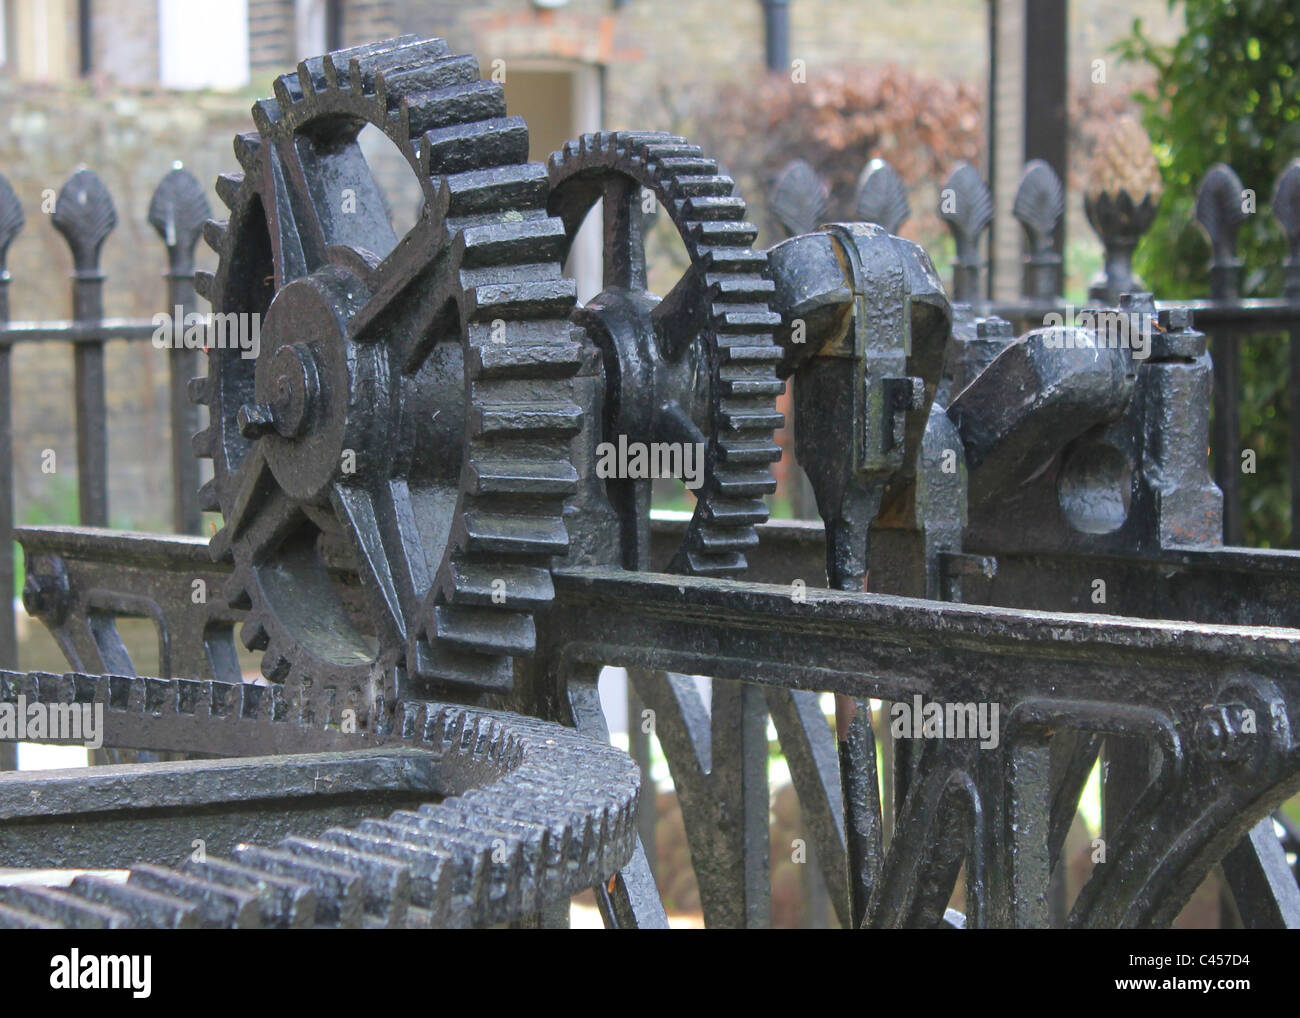 Workings of a Horse Drawn waterpump installed at Gads Hill by Charles Dickens. Now at Eastgate House, Rochester - Stock Image